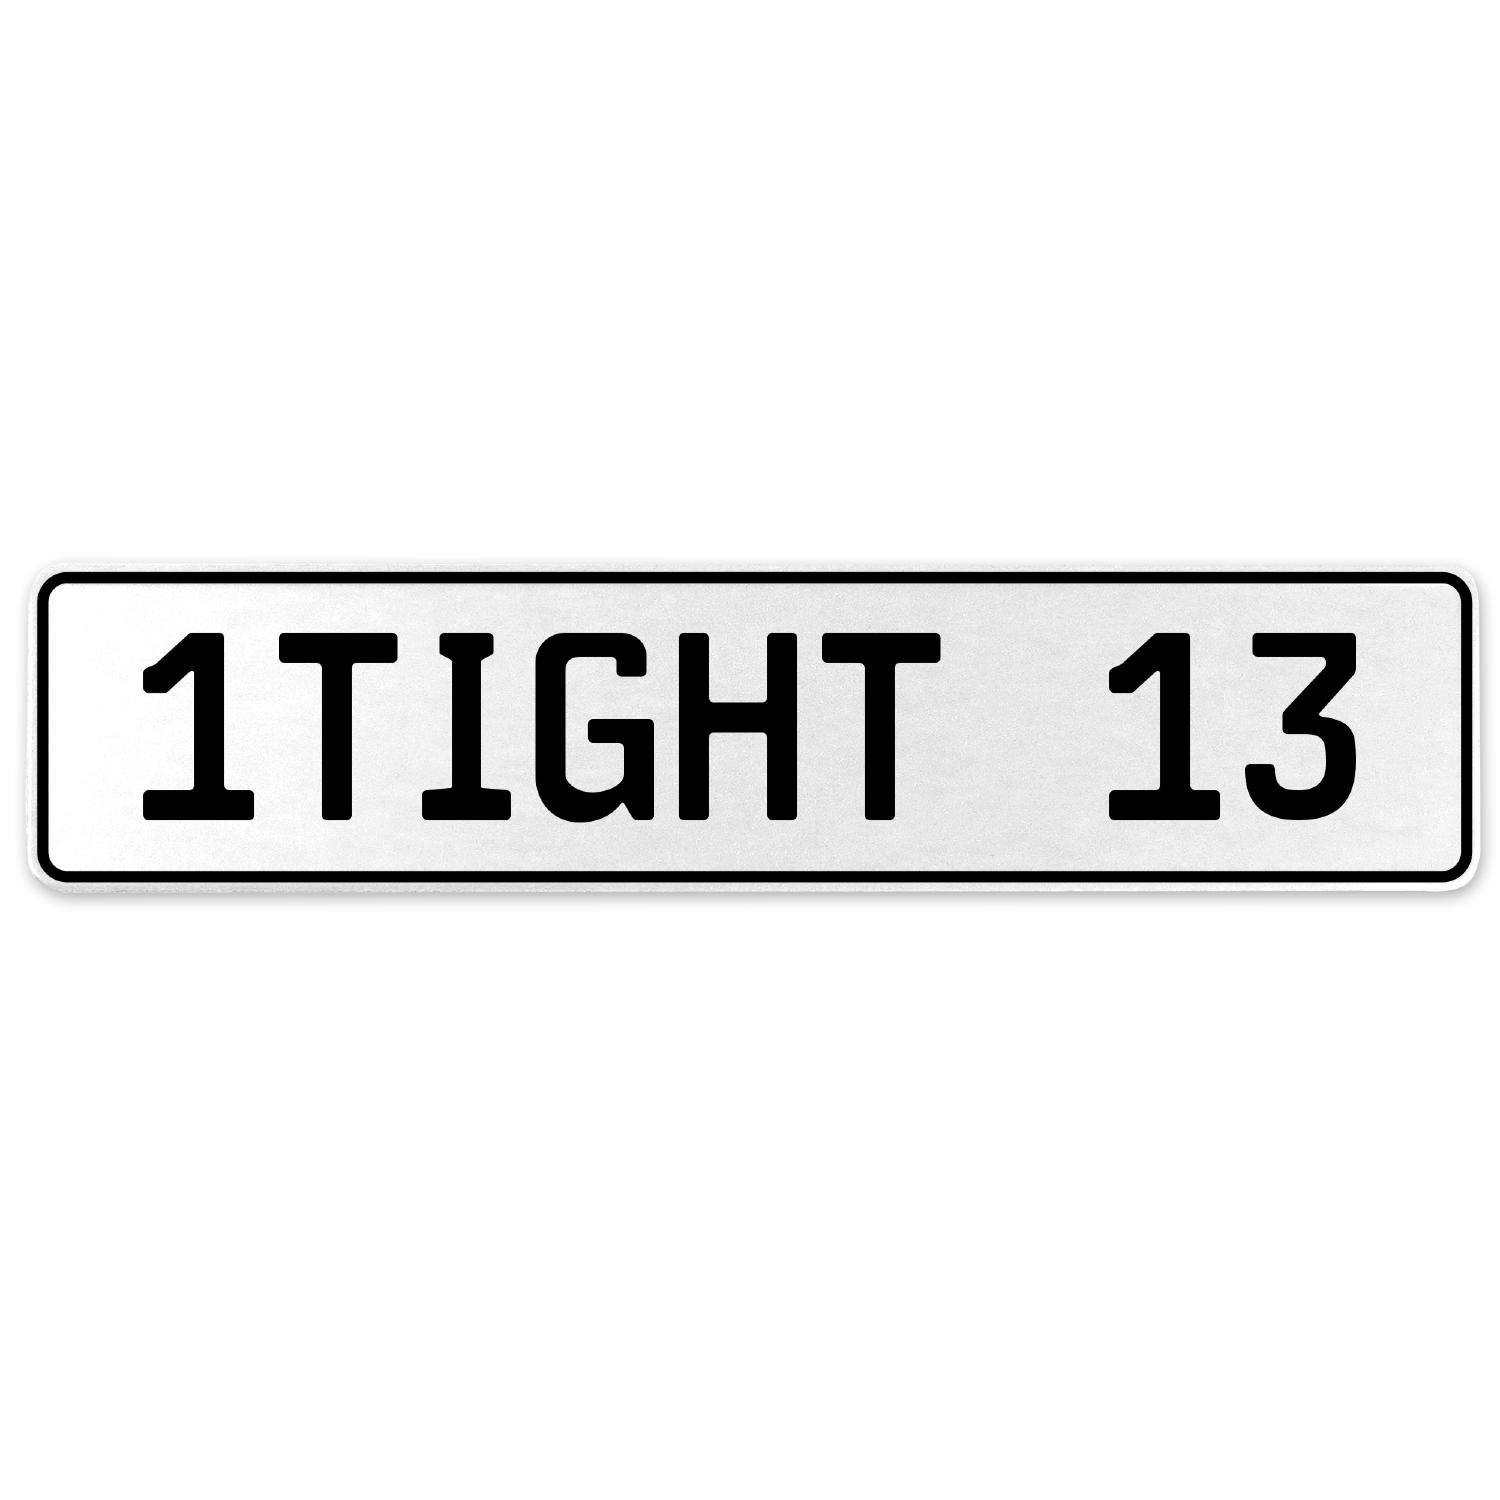 Vintage Parts 554808 1TIGHT 13 White Stamped Aluminum European License Plate